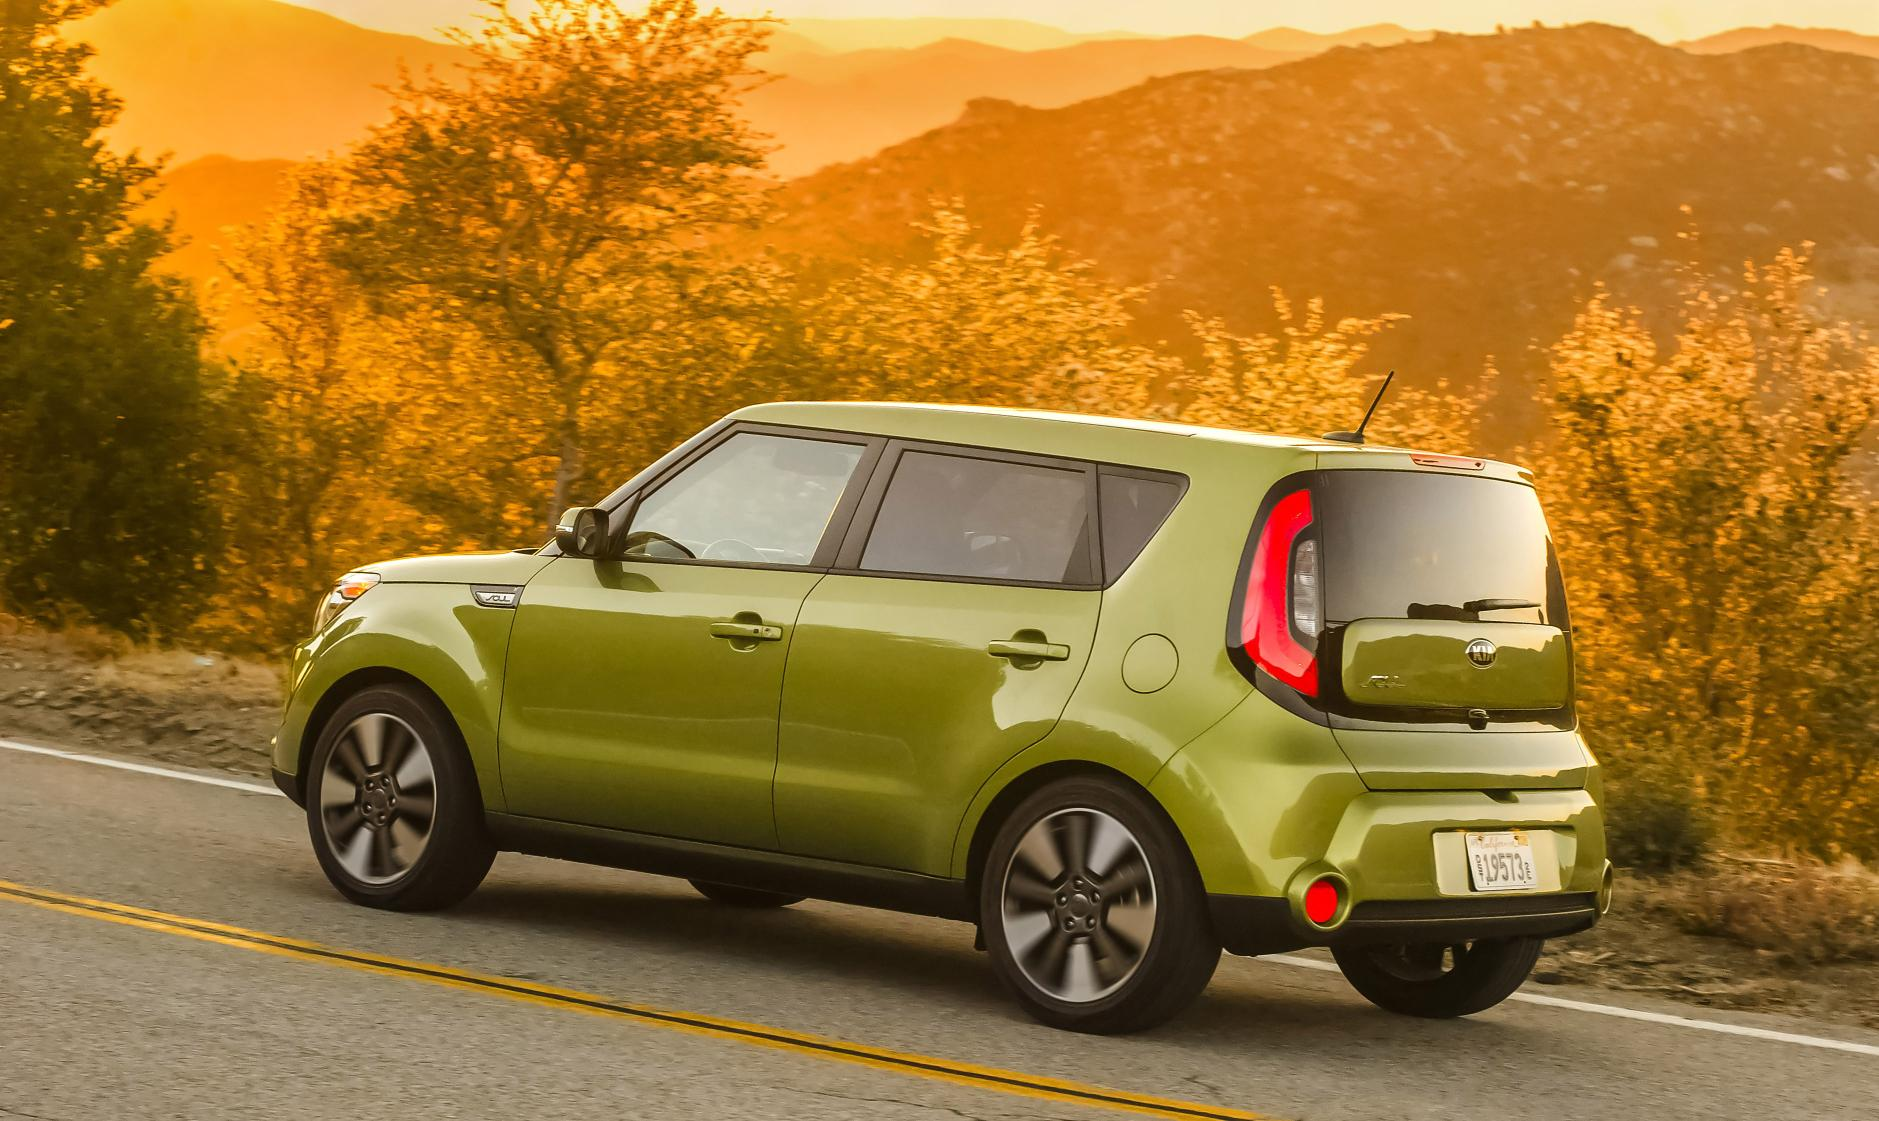 2014 kia soul us pricing revealed autoevolution. Black Bedroom Furniture Sets. Home Design Ideas